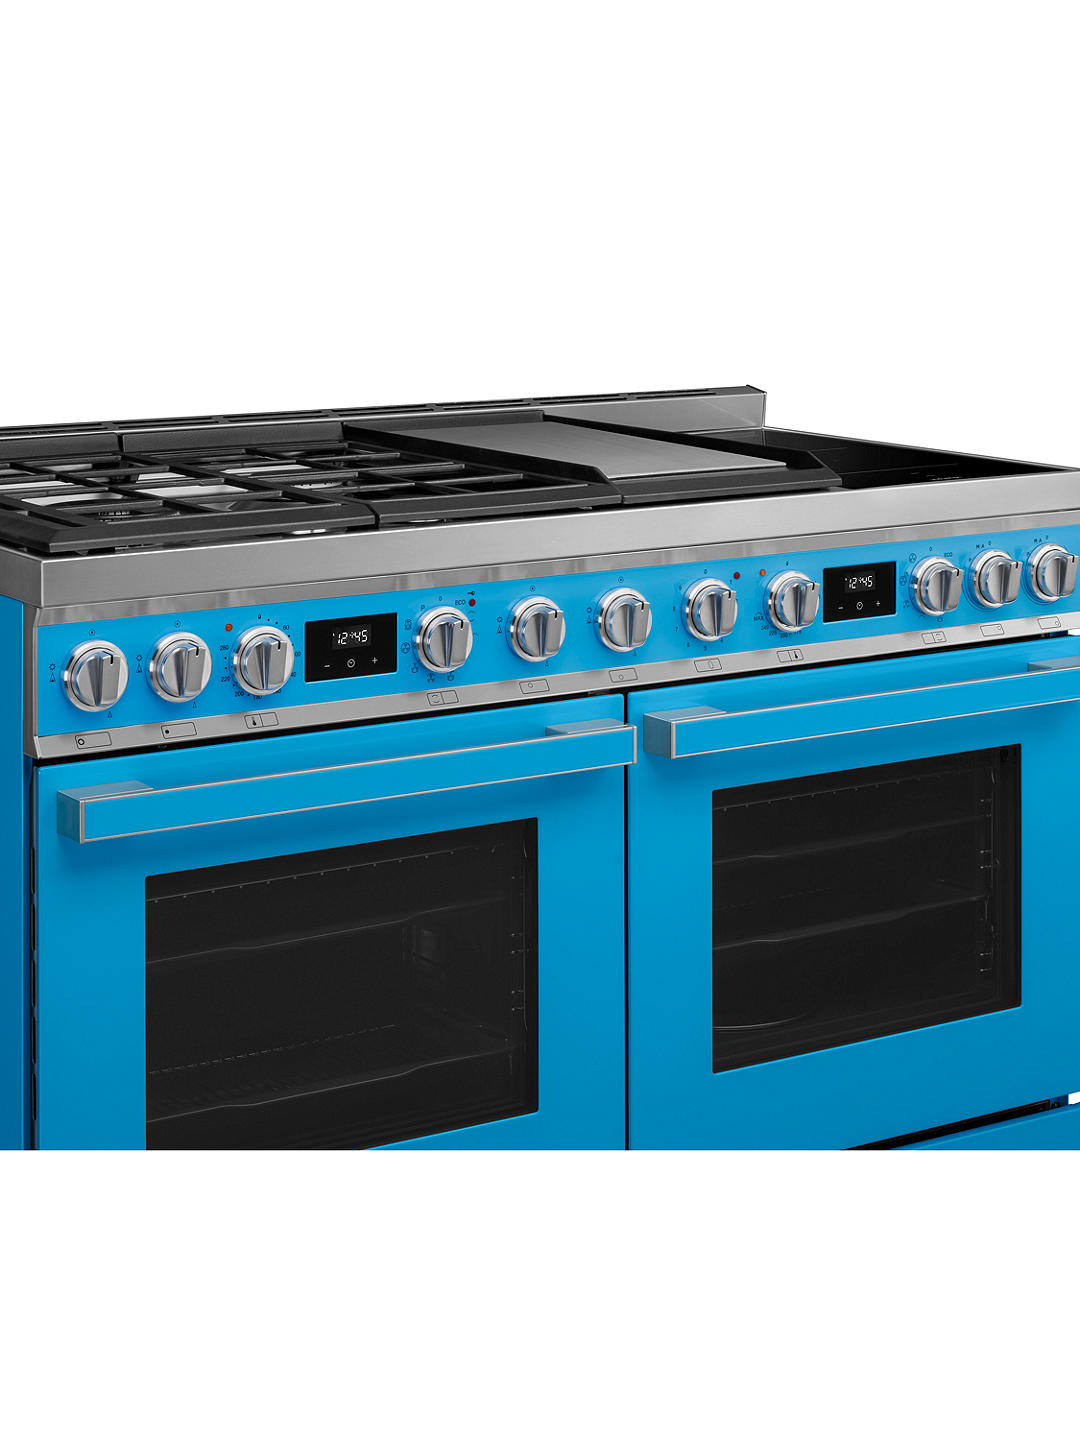 Buy Smeg Portofino CPF120IGMP 120cm Dual Fuel Range Cooker, A+/A Energy Rating, Turquoise Online at johnlewis.com